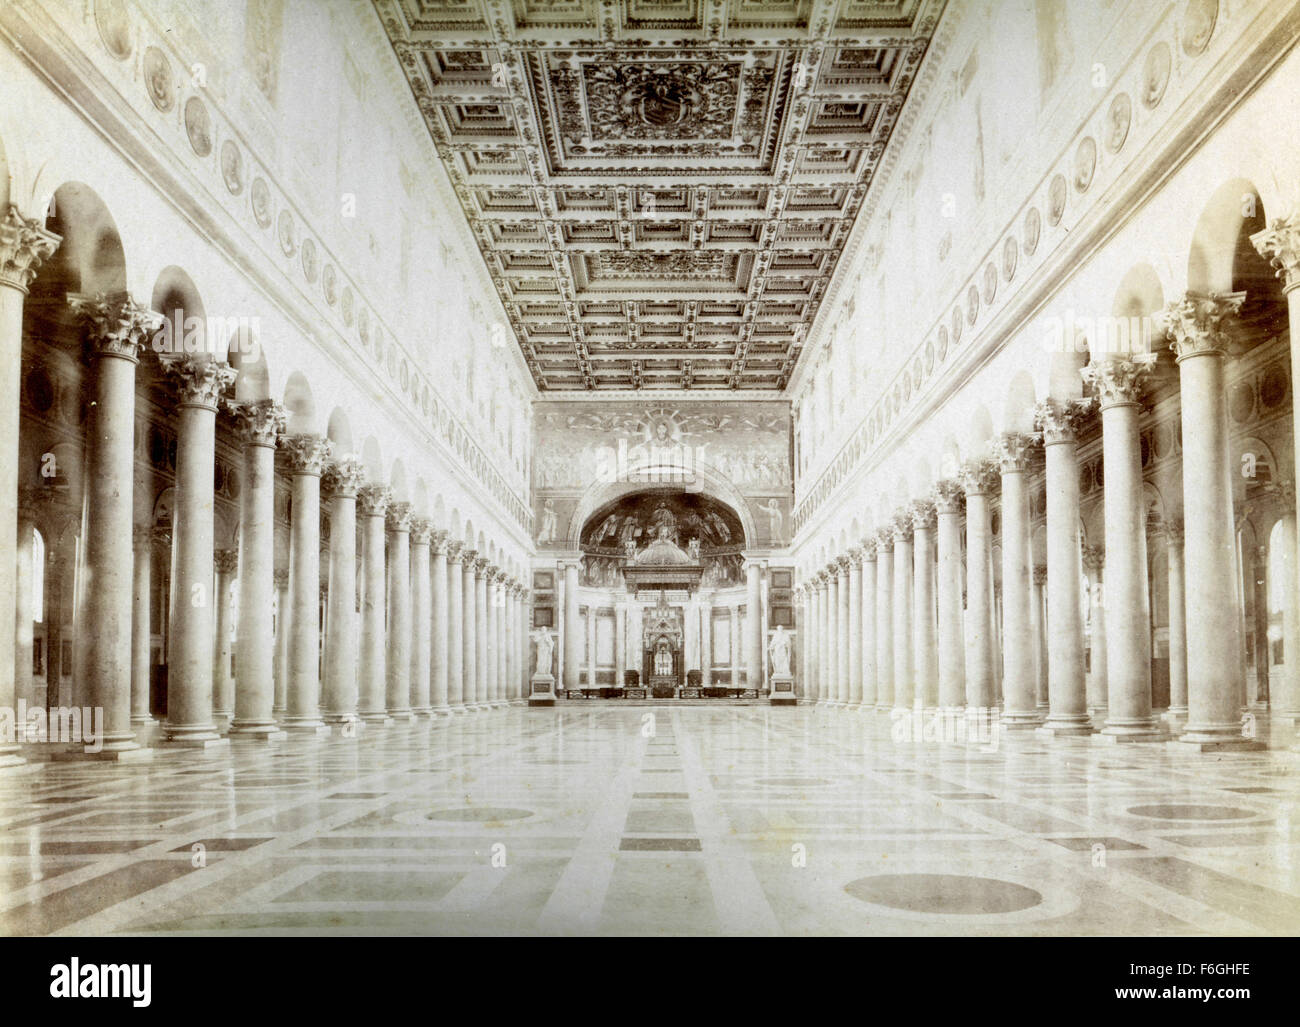 Inside the Church of St. Paul, Rome, Italy - Stock Image